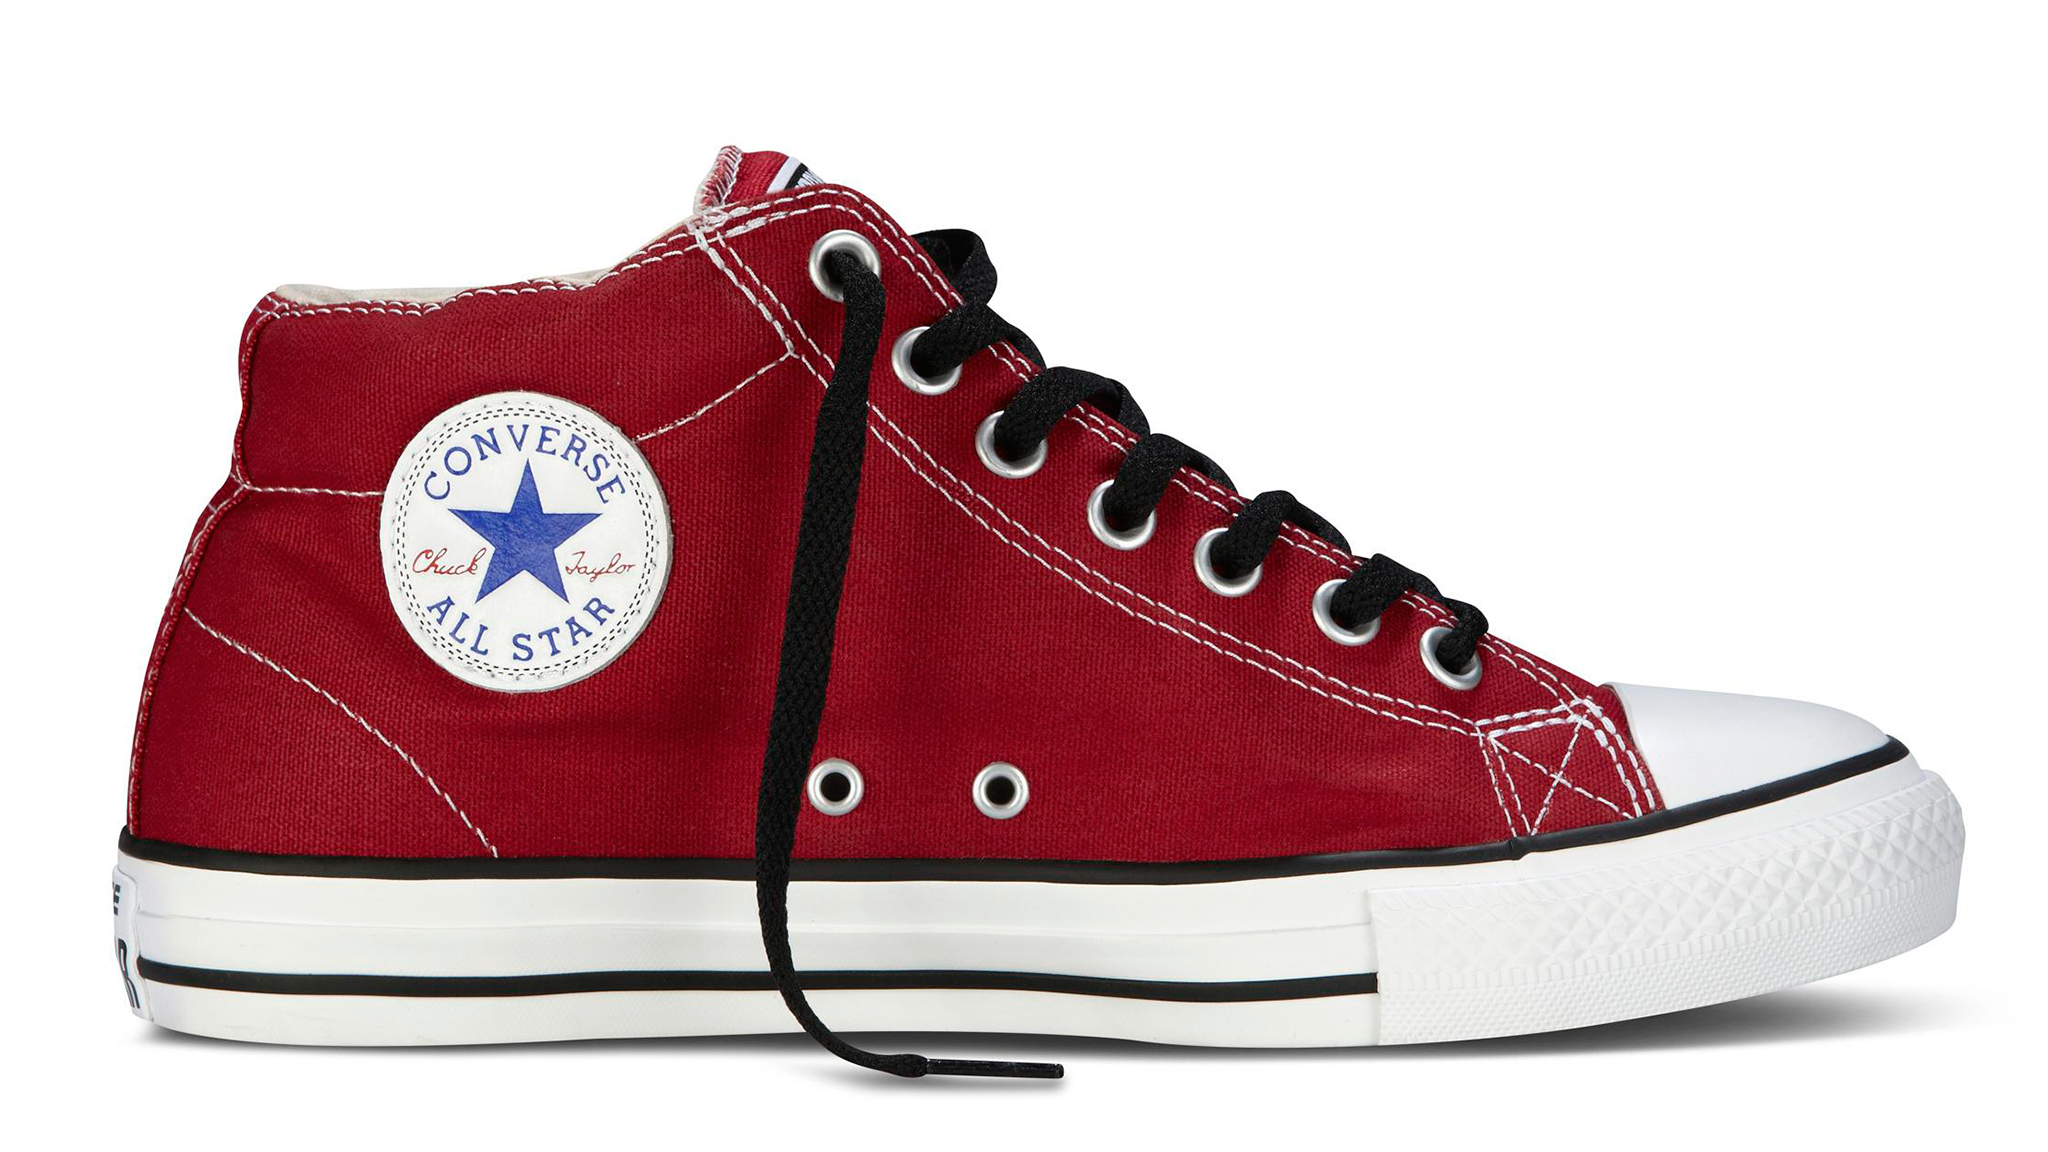 The Jason Jessee Mid by Converse